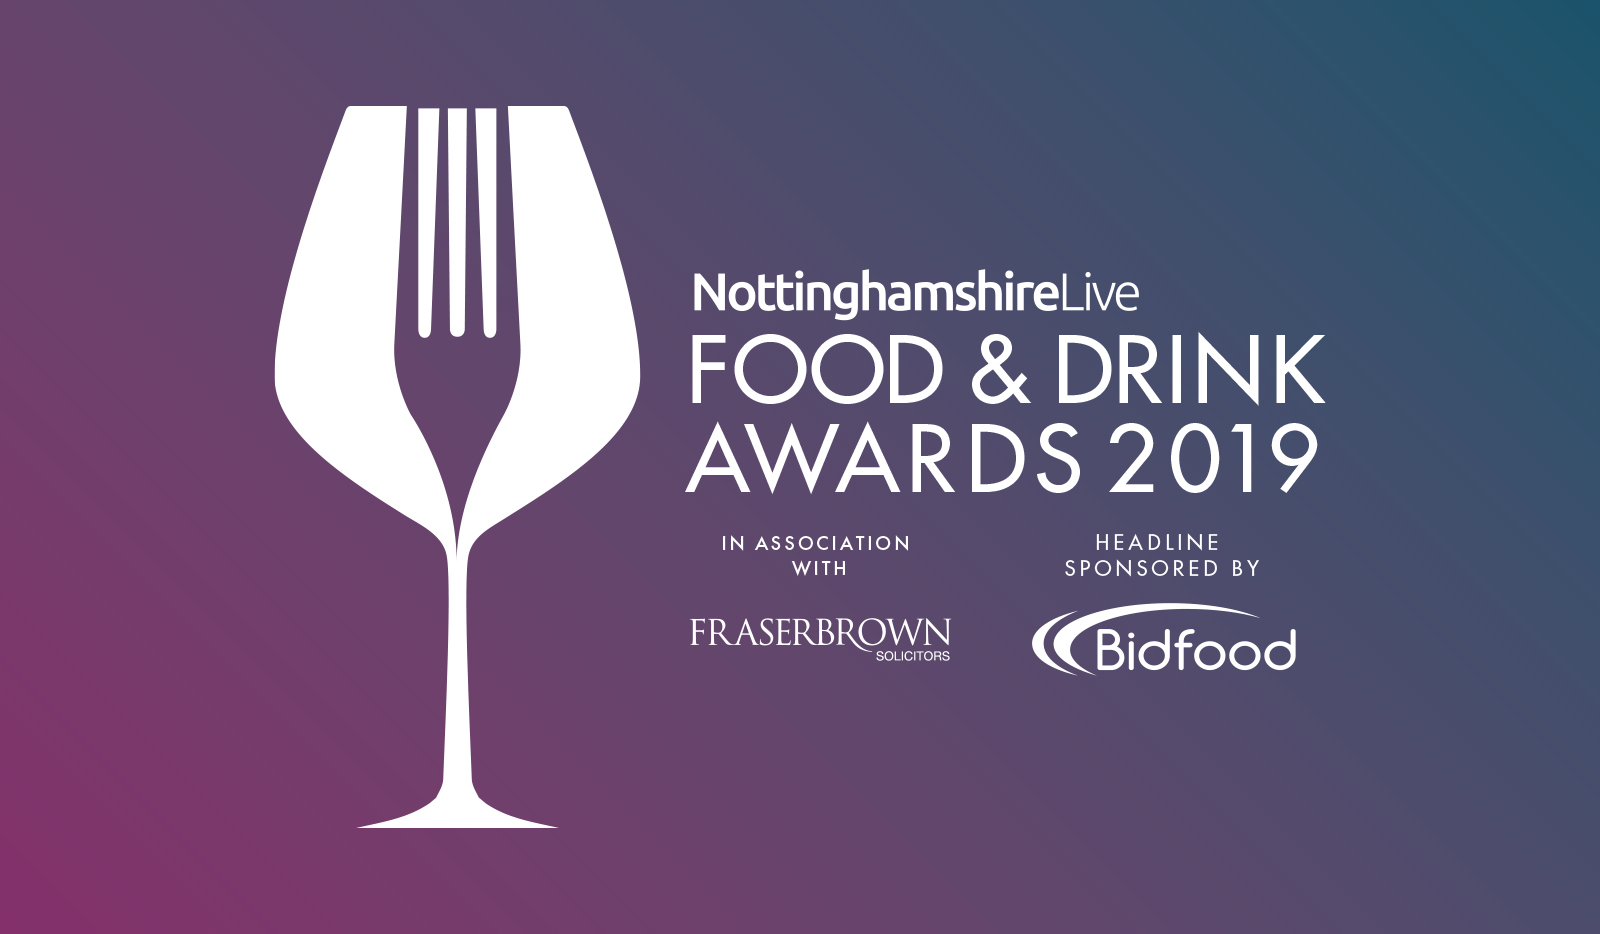 NottinghamshireLive Food & Drink Awards 2019 - Awards Logo.jpg